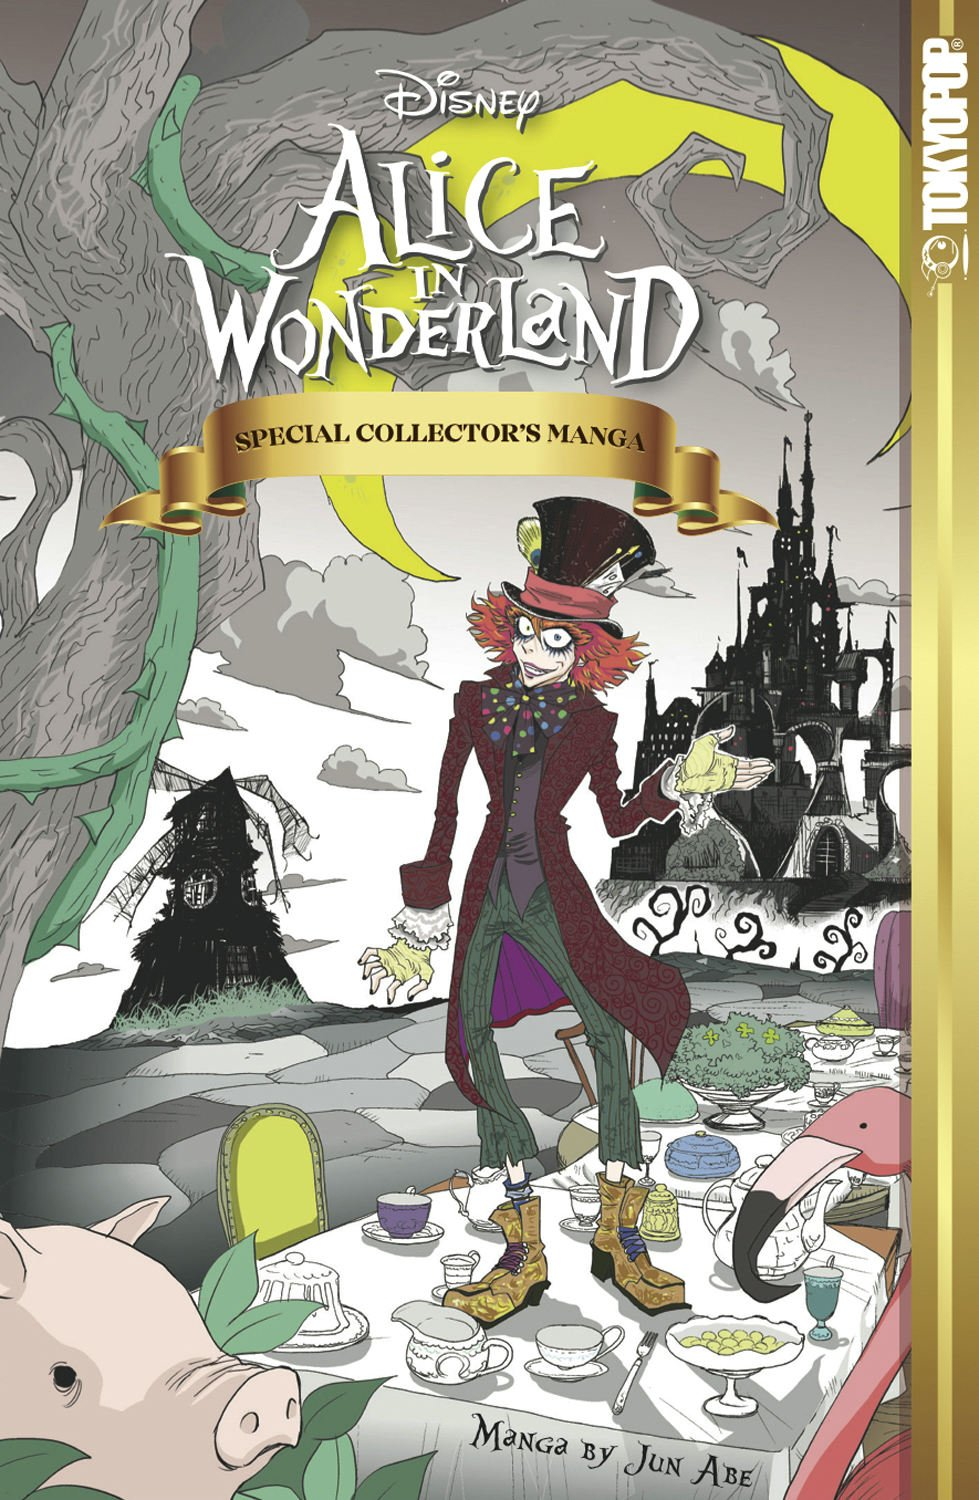 Alice in Wonderland: Special Collector's Manga [Hardcover]